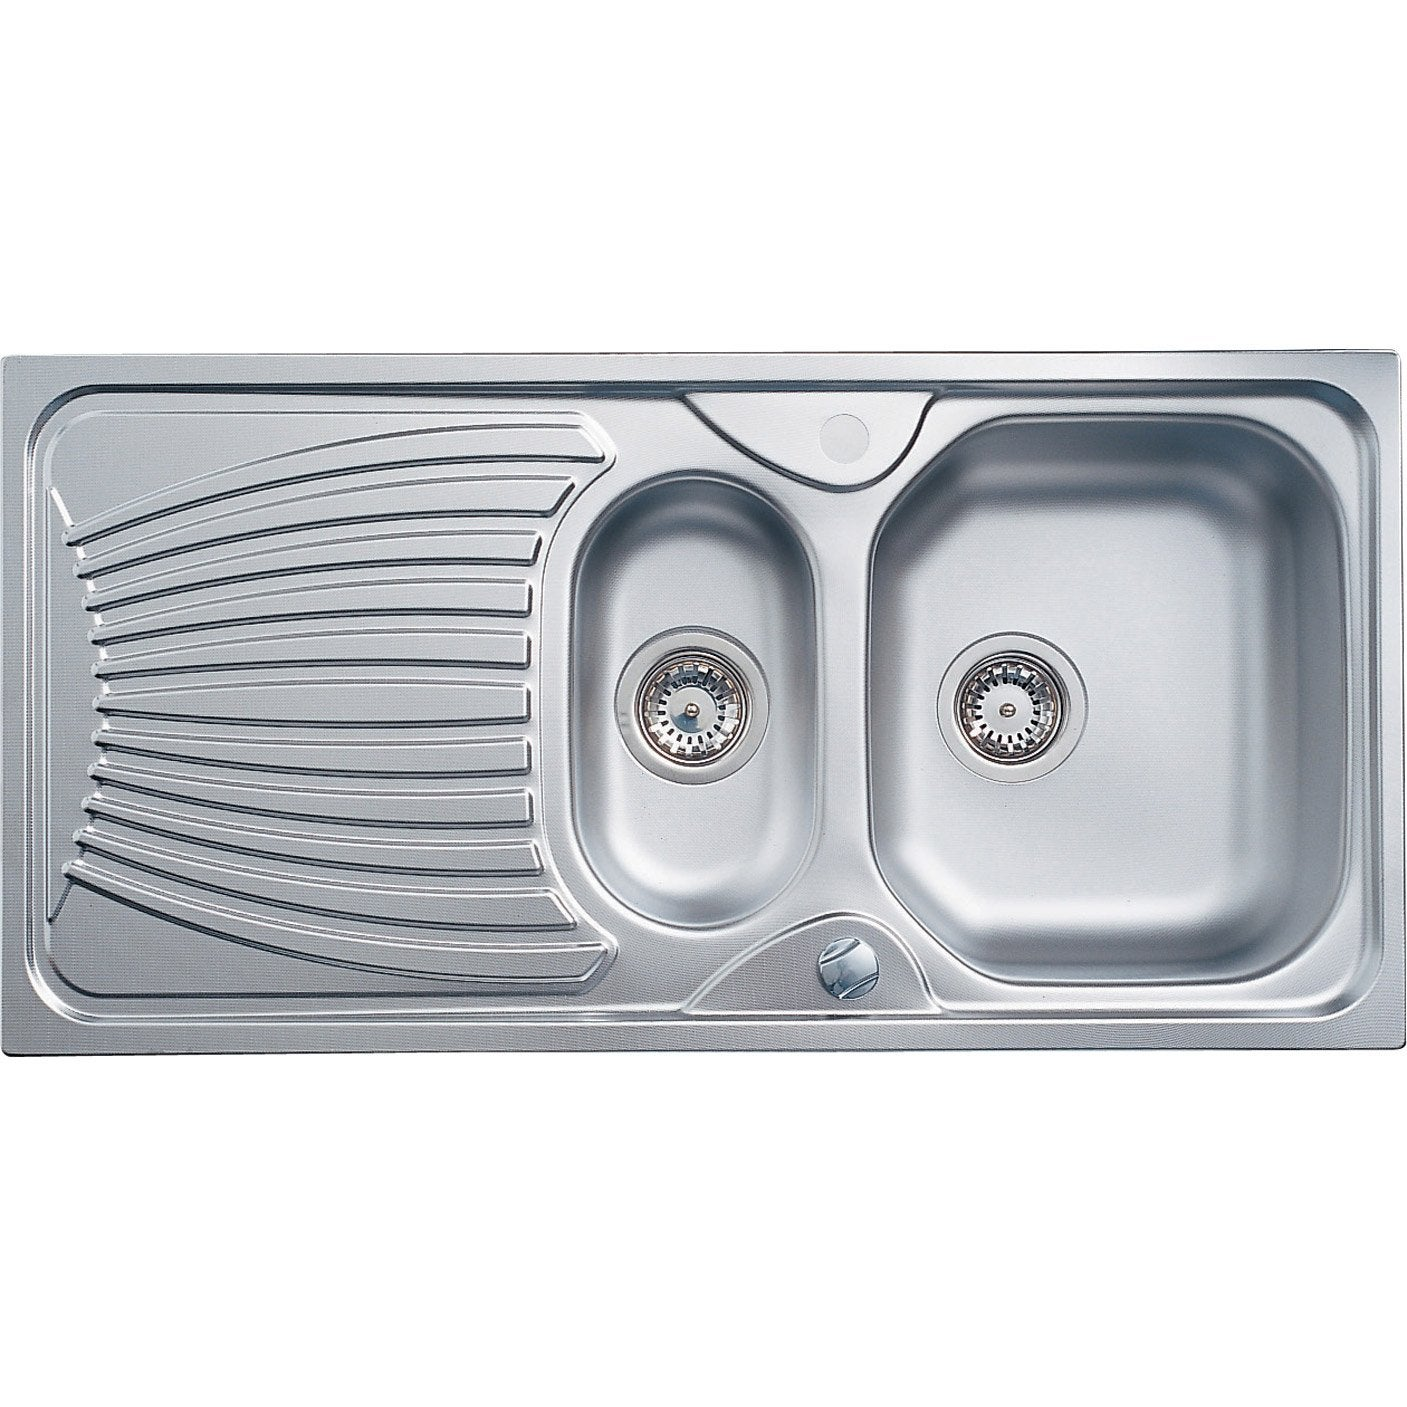 Evier Encastrable Inox Pearlfection Fr